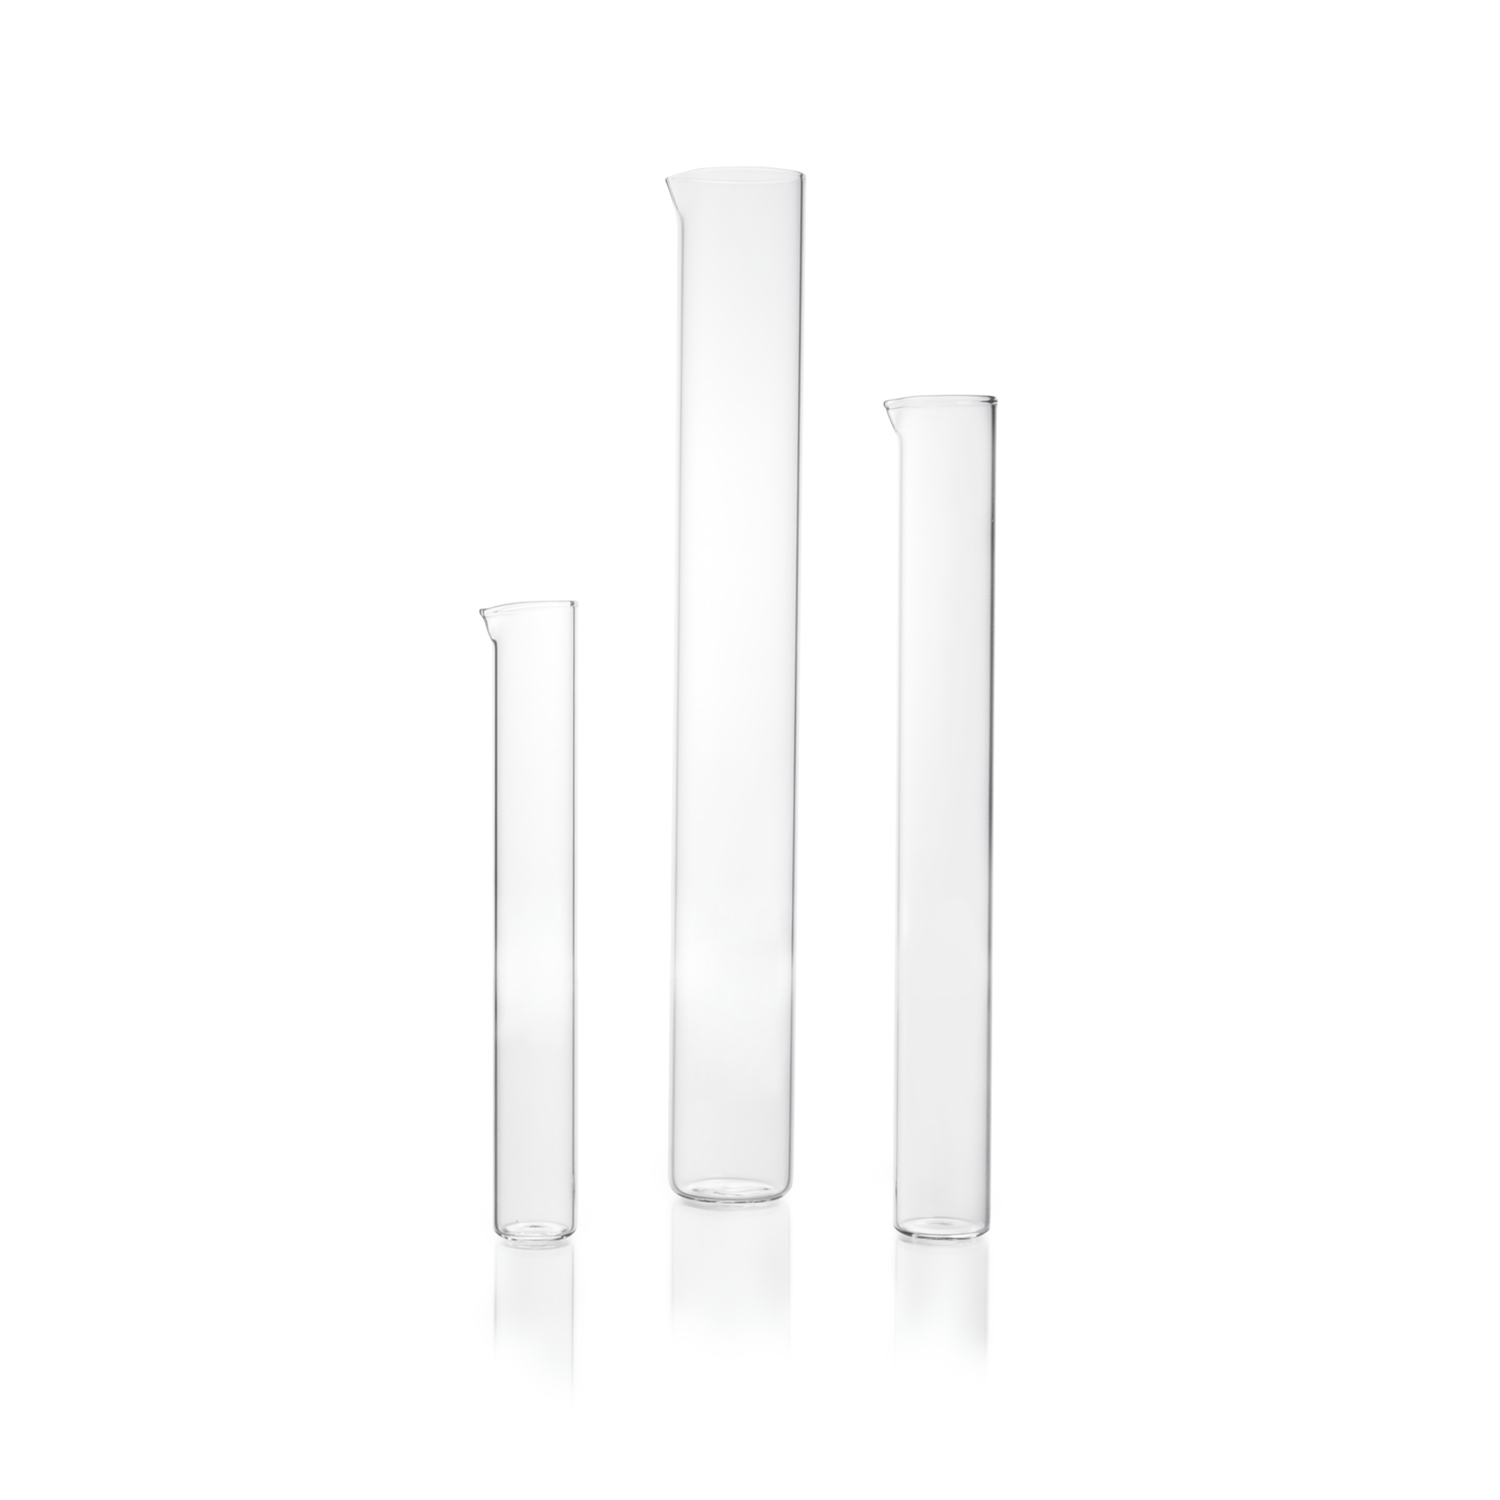 DURAN® Measuring Cylinder Blank, tall form, without base and gradution, 500 mL